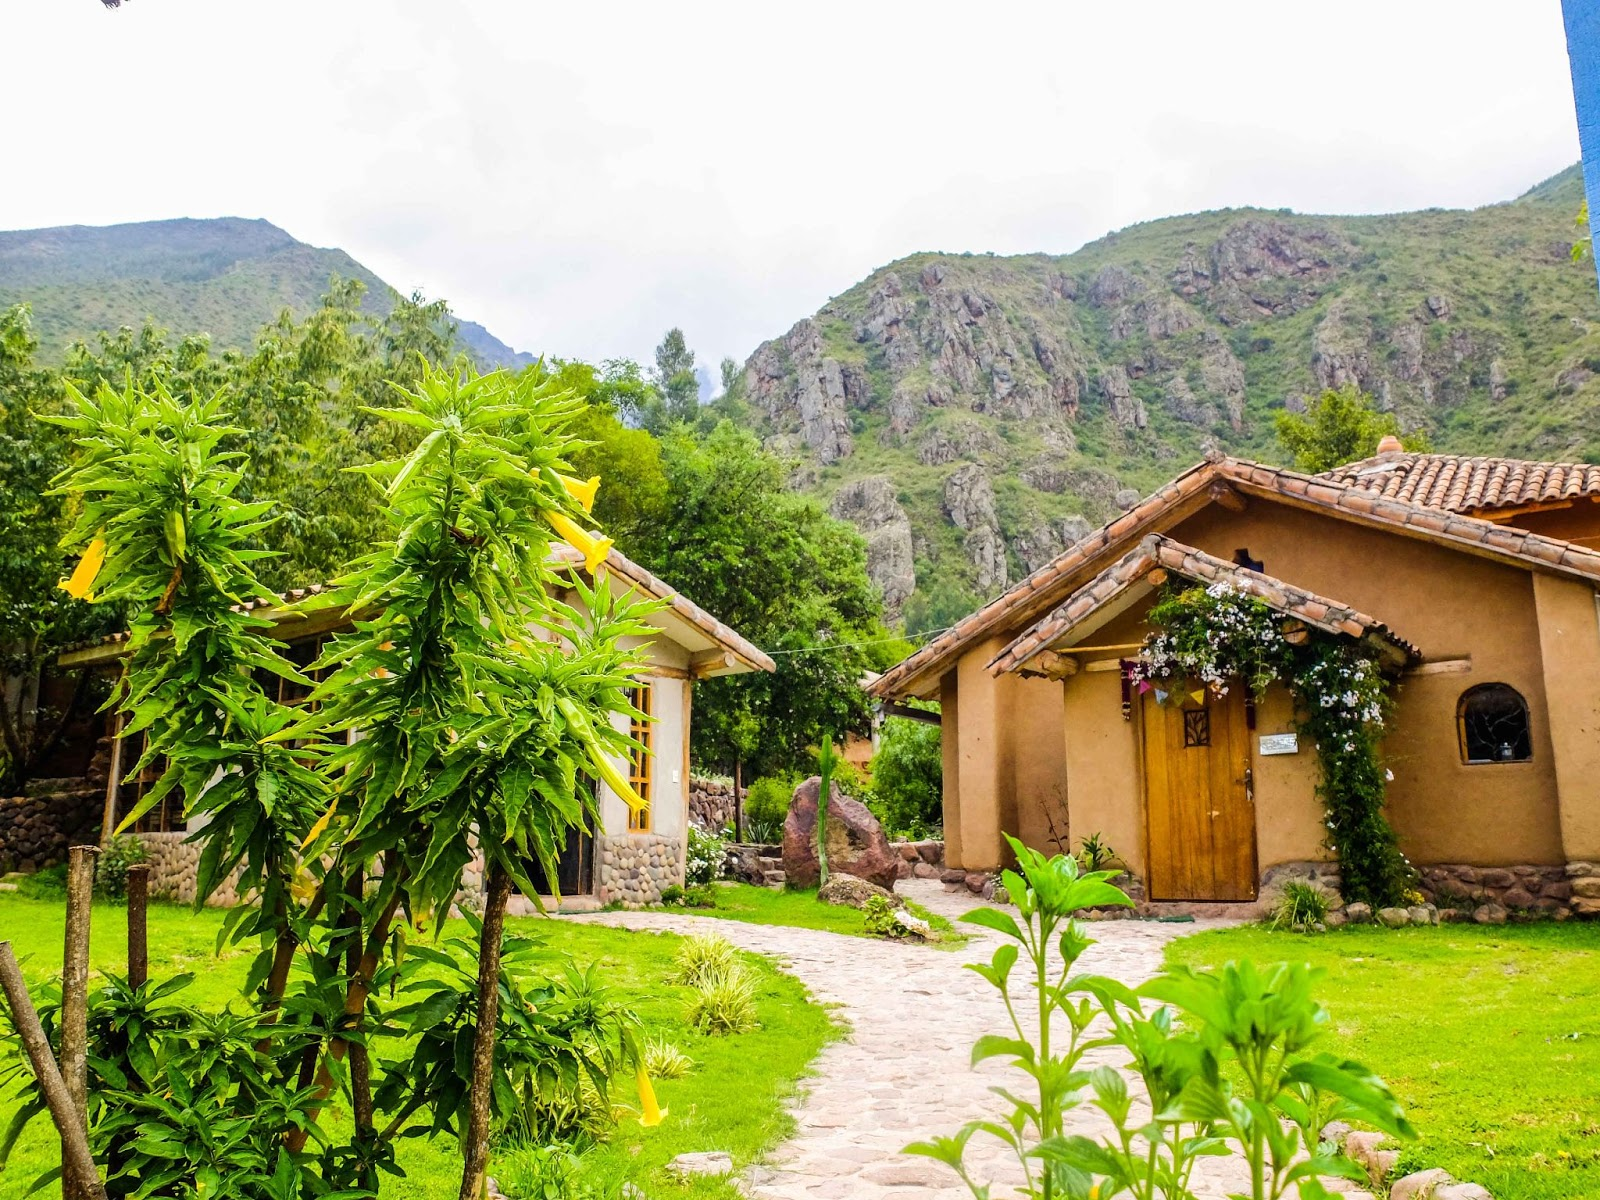 Ayahuasca Retreats.Behold Retreats, a wellness company that specialises in the therapeutic use of plant-based medicine to aid in personal and spiritual growth. Plant medicine luxury retreat, ayahuasca, psychedelics, psilocybin, 5-meo DMT. Science, infographics, research